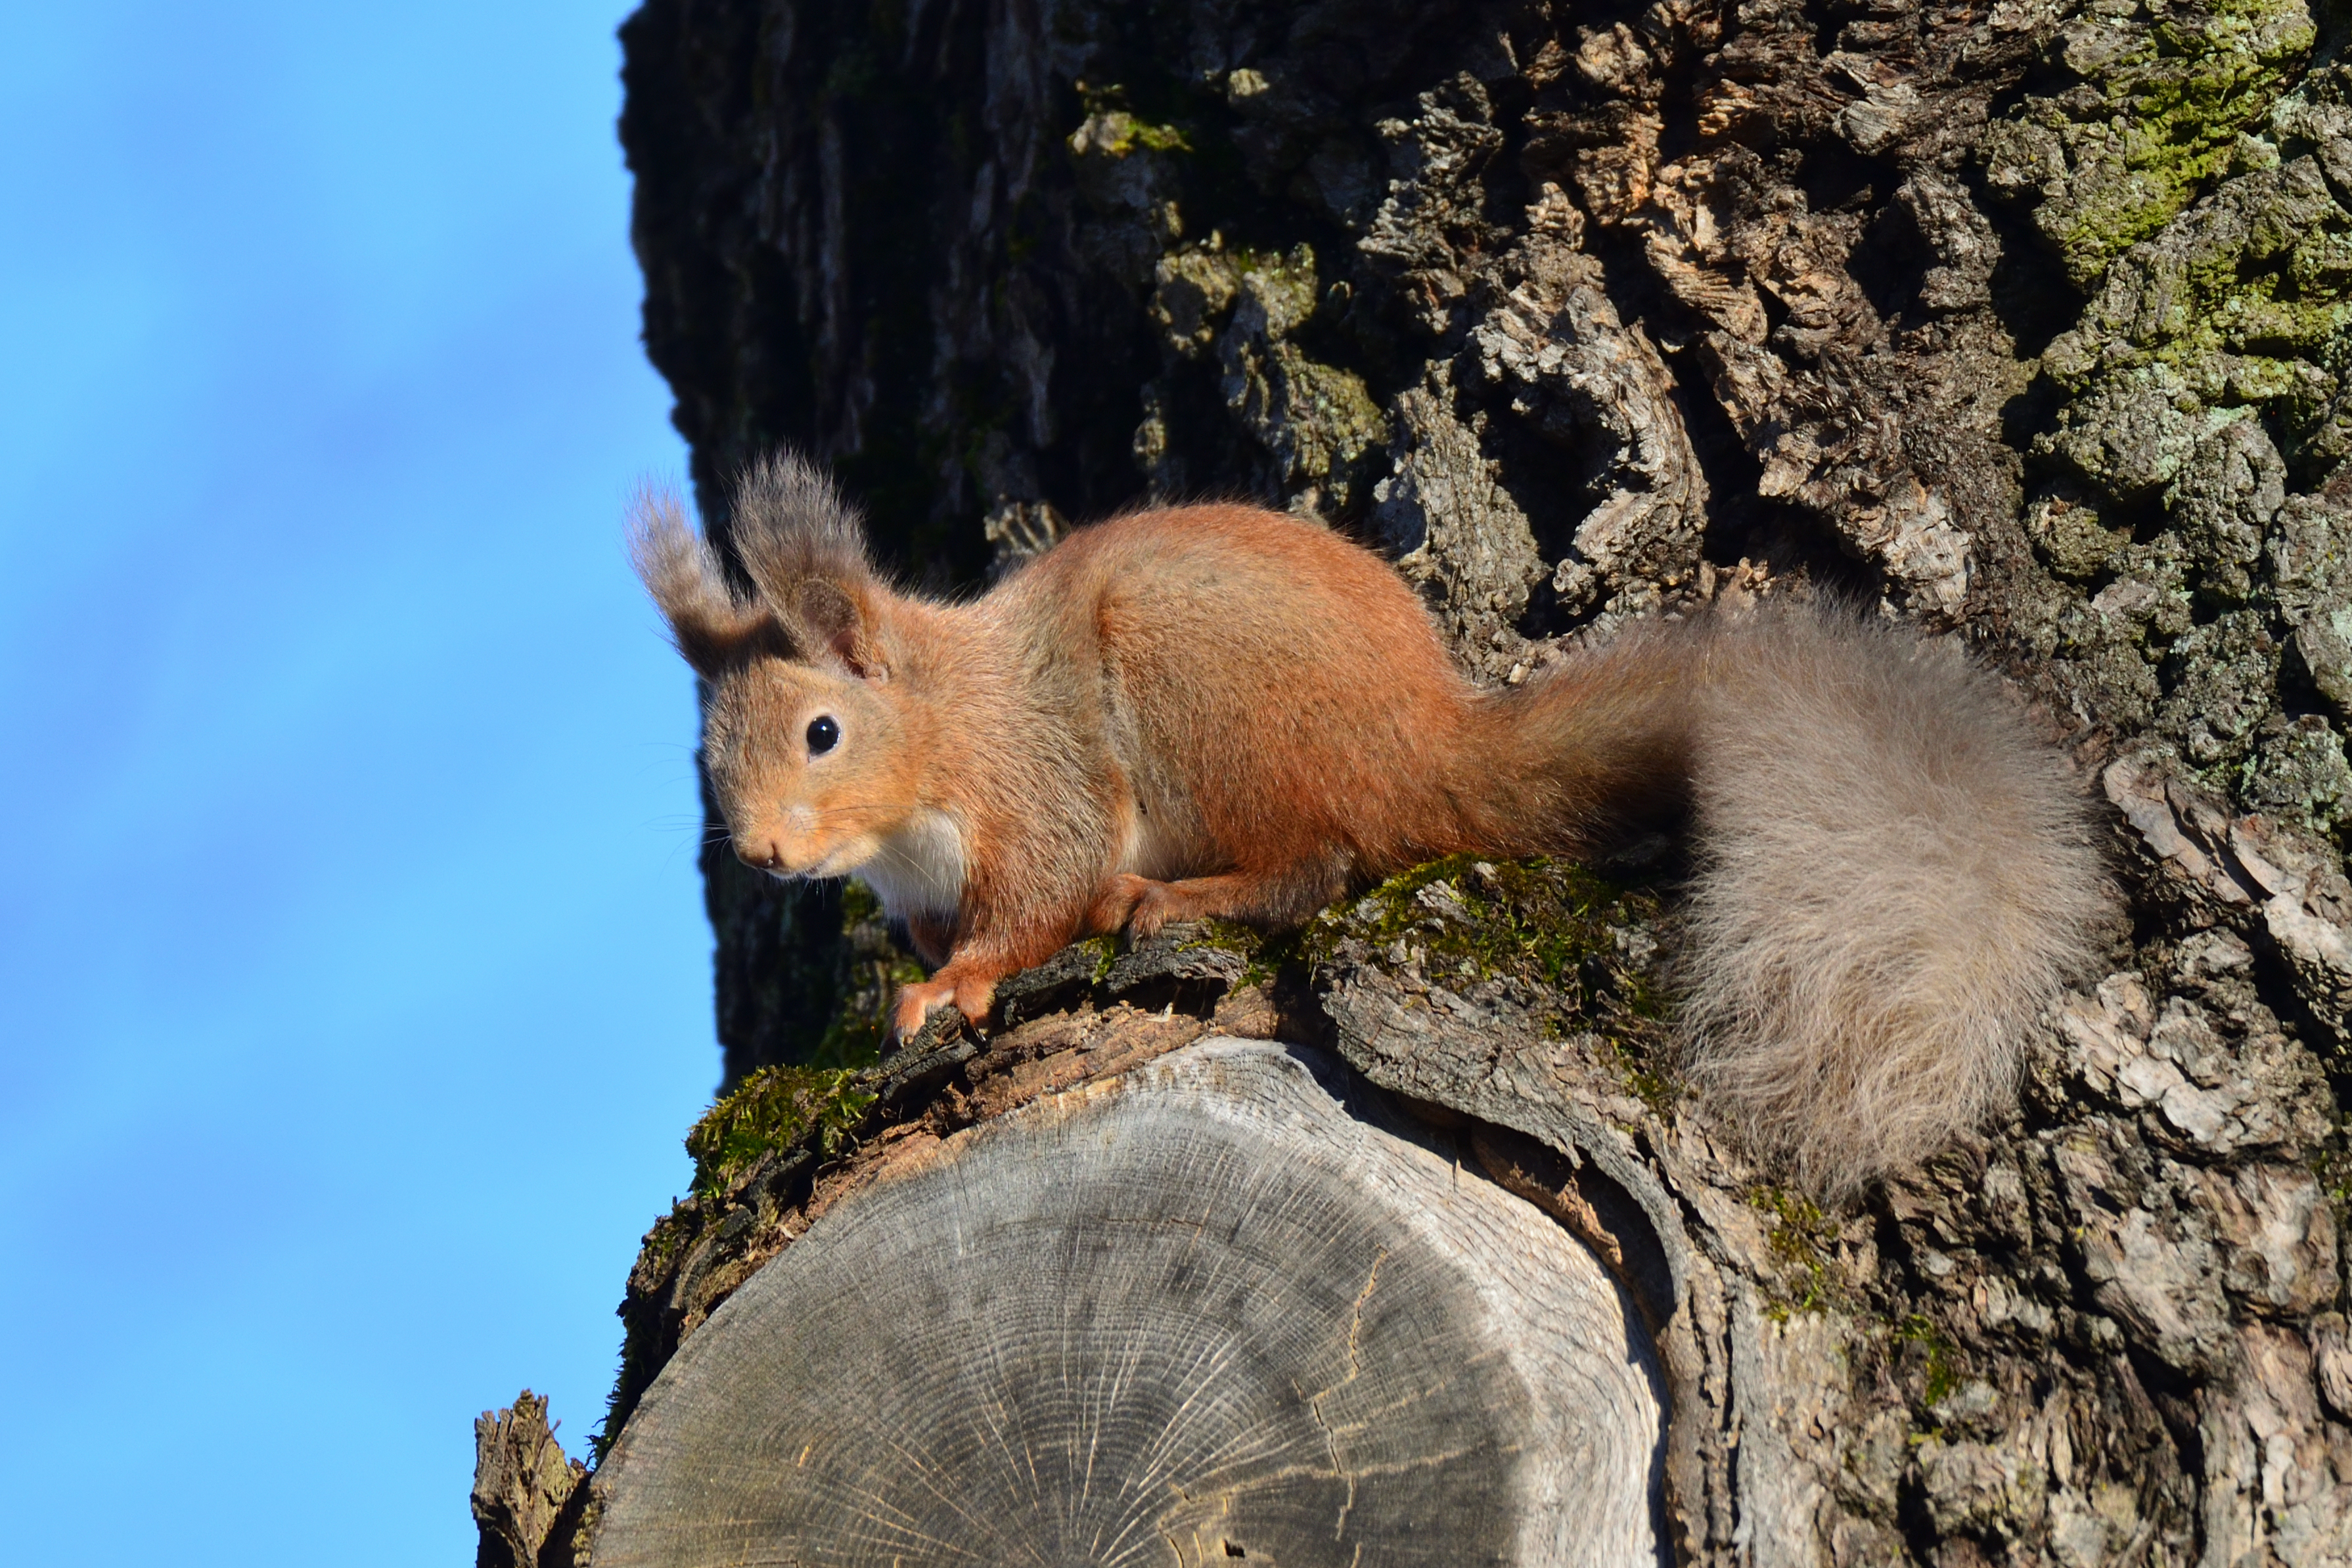 56256 download wallpaper Animals, Squirrel, Animal, Wood, Tree, Bark, Wildlife screensavers and pictures for free